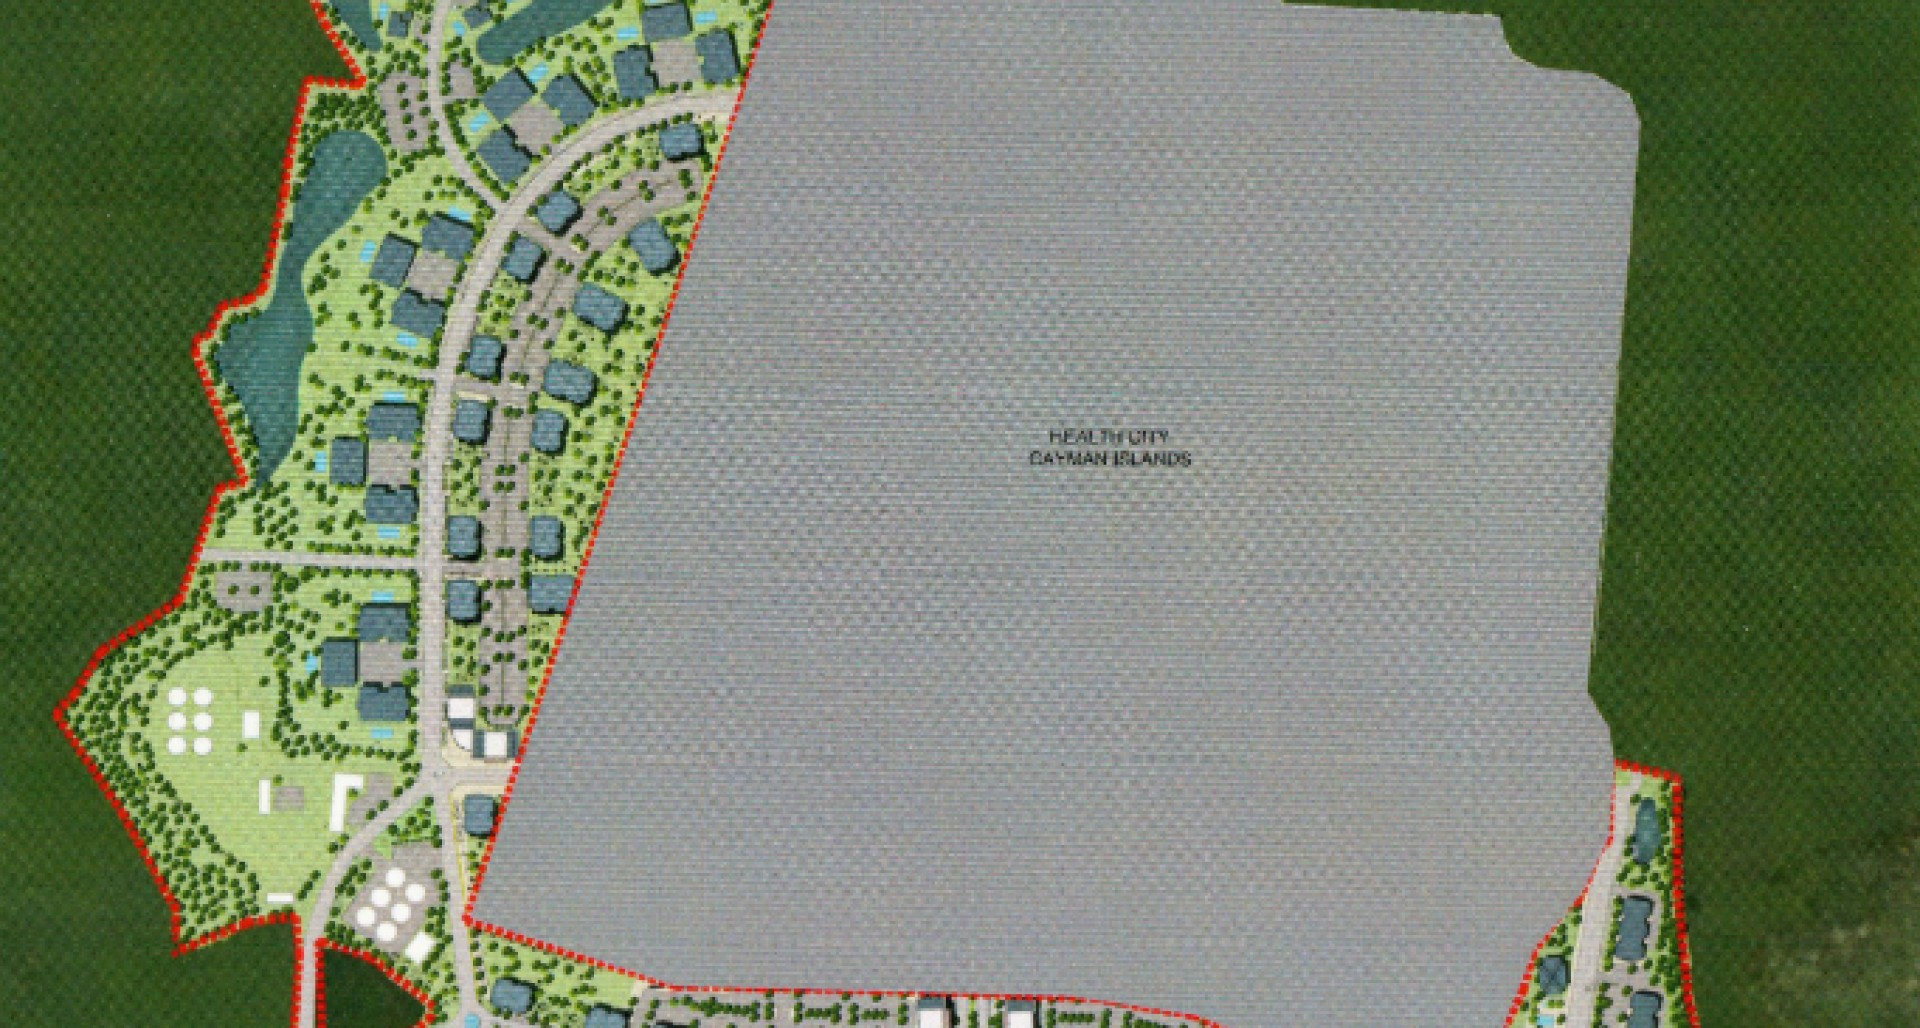 120 Acres of Mixed Use Land surrounding Health City